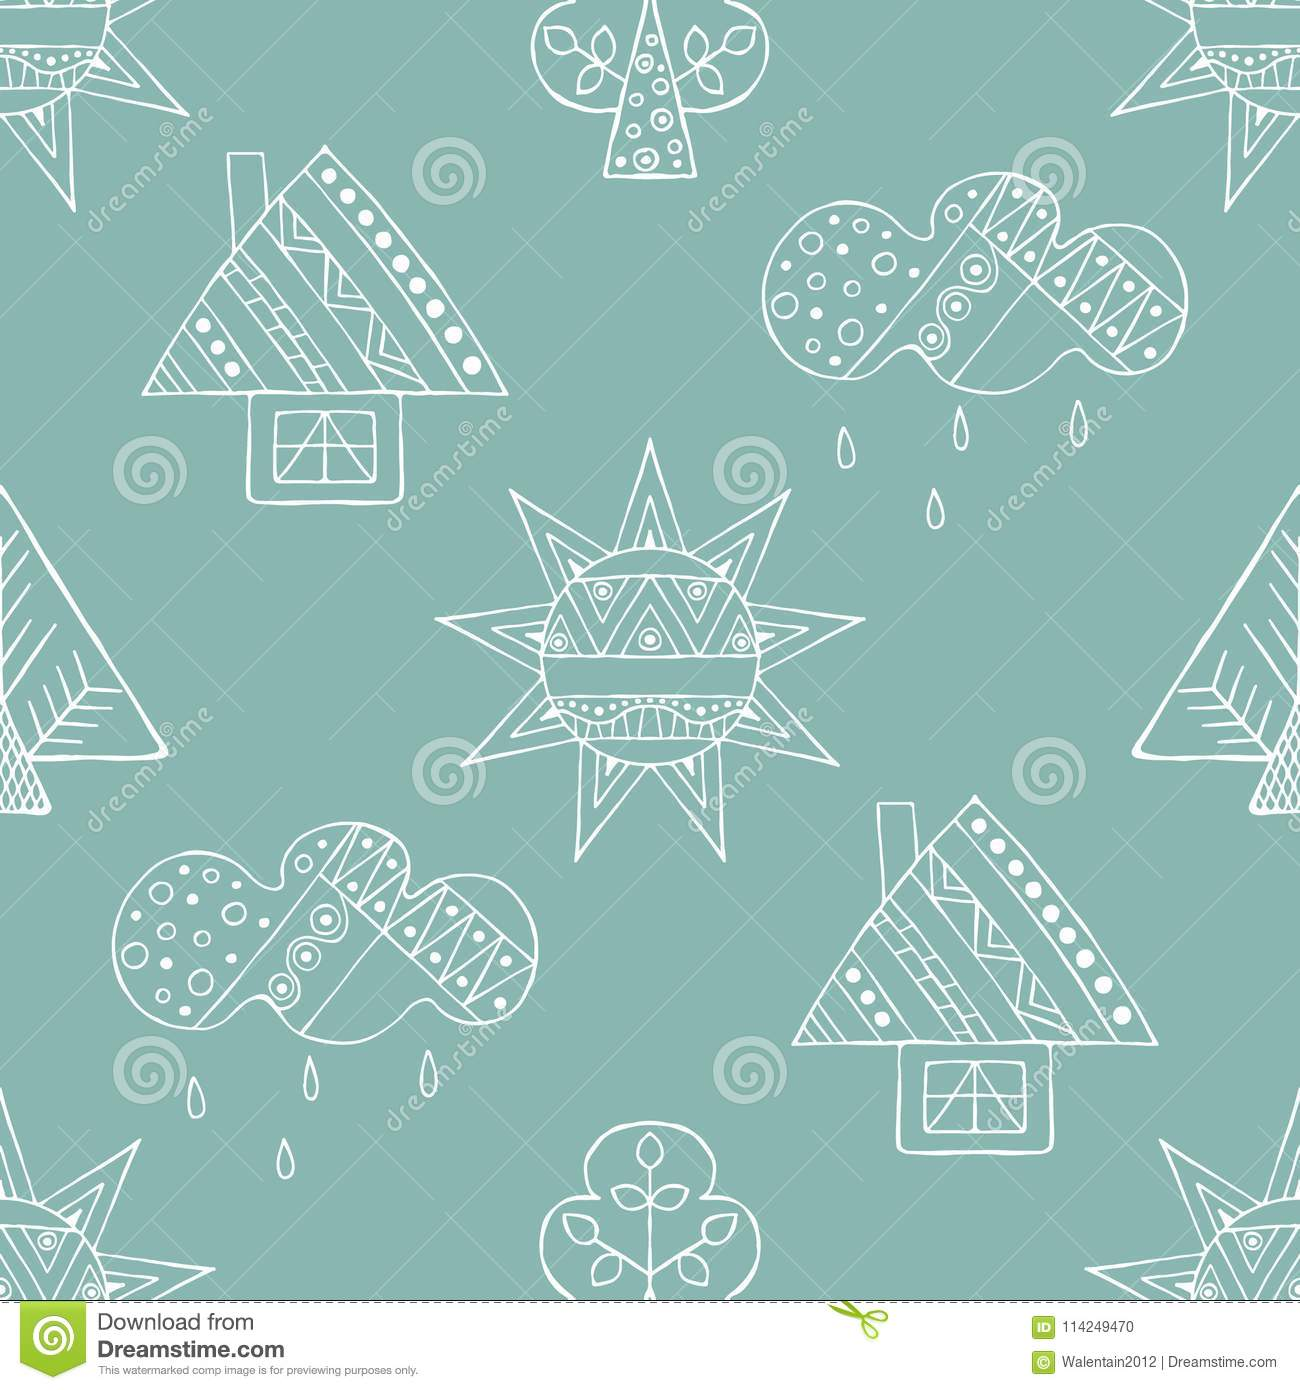 Drawing Lines With Core Graphics : Childish cartoons illustrations vector stock images